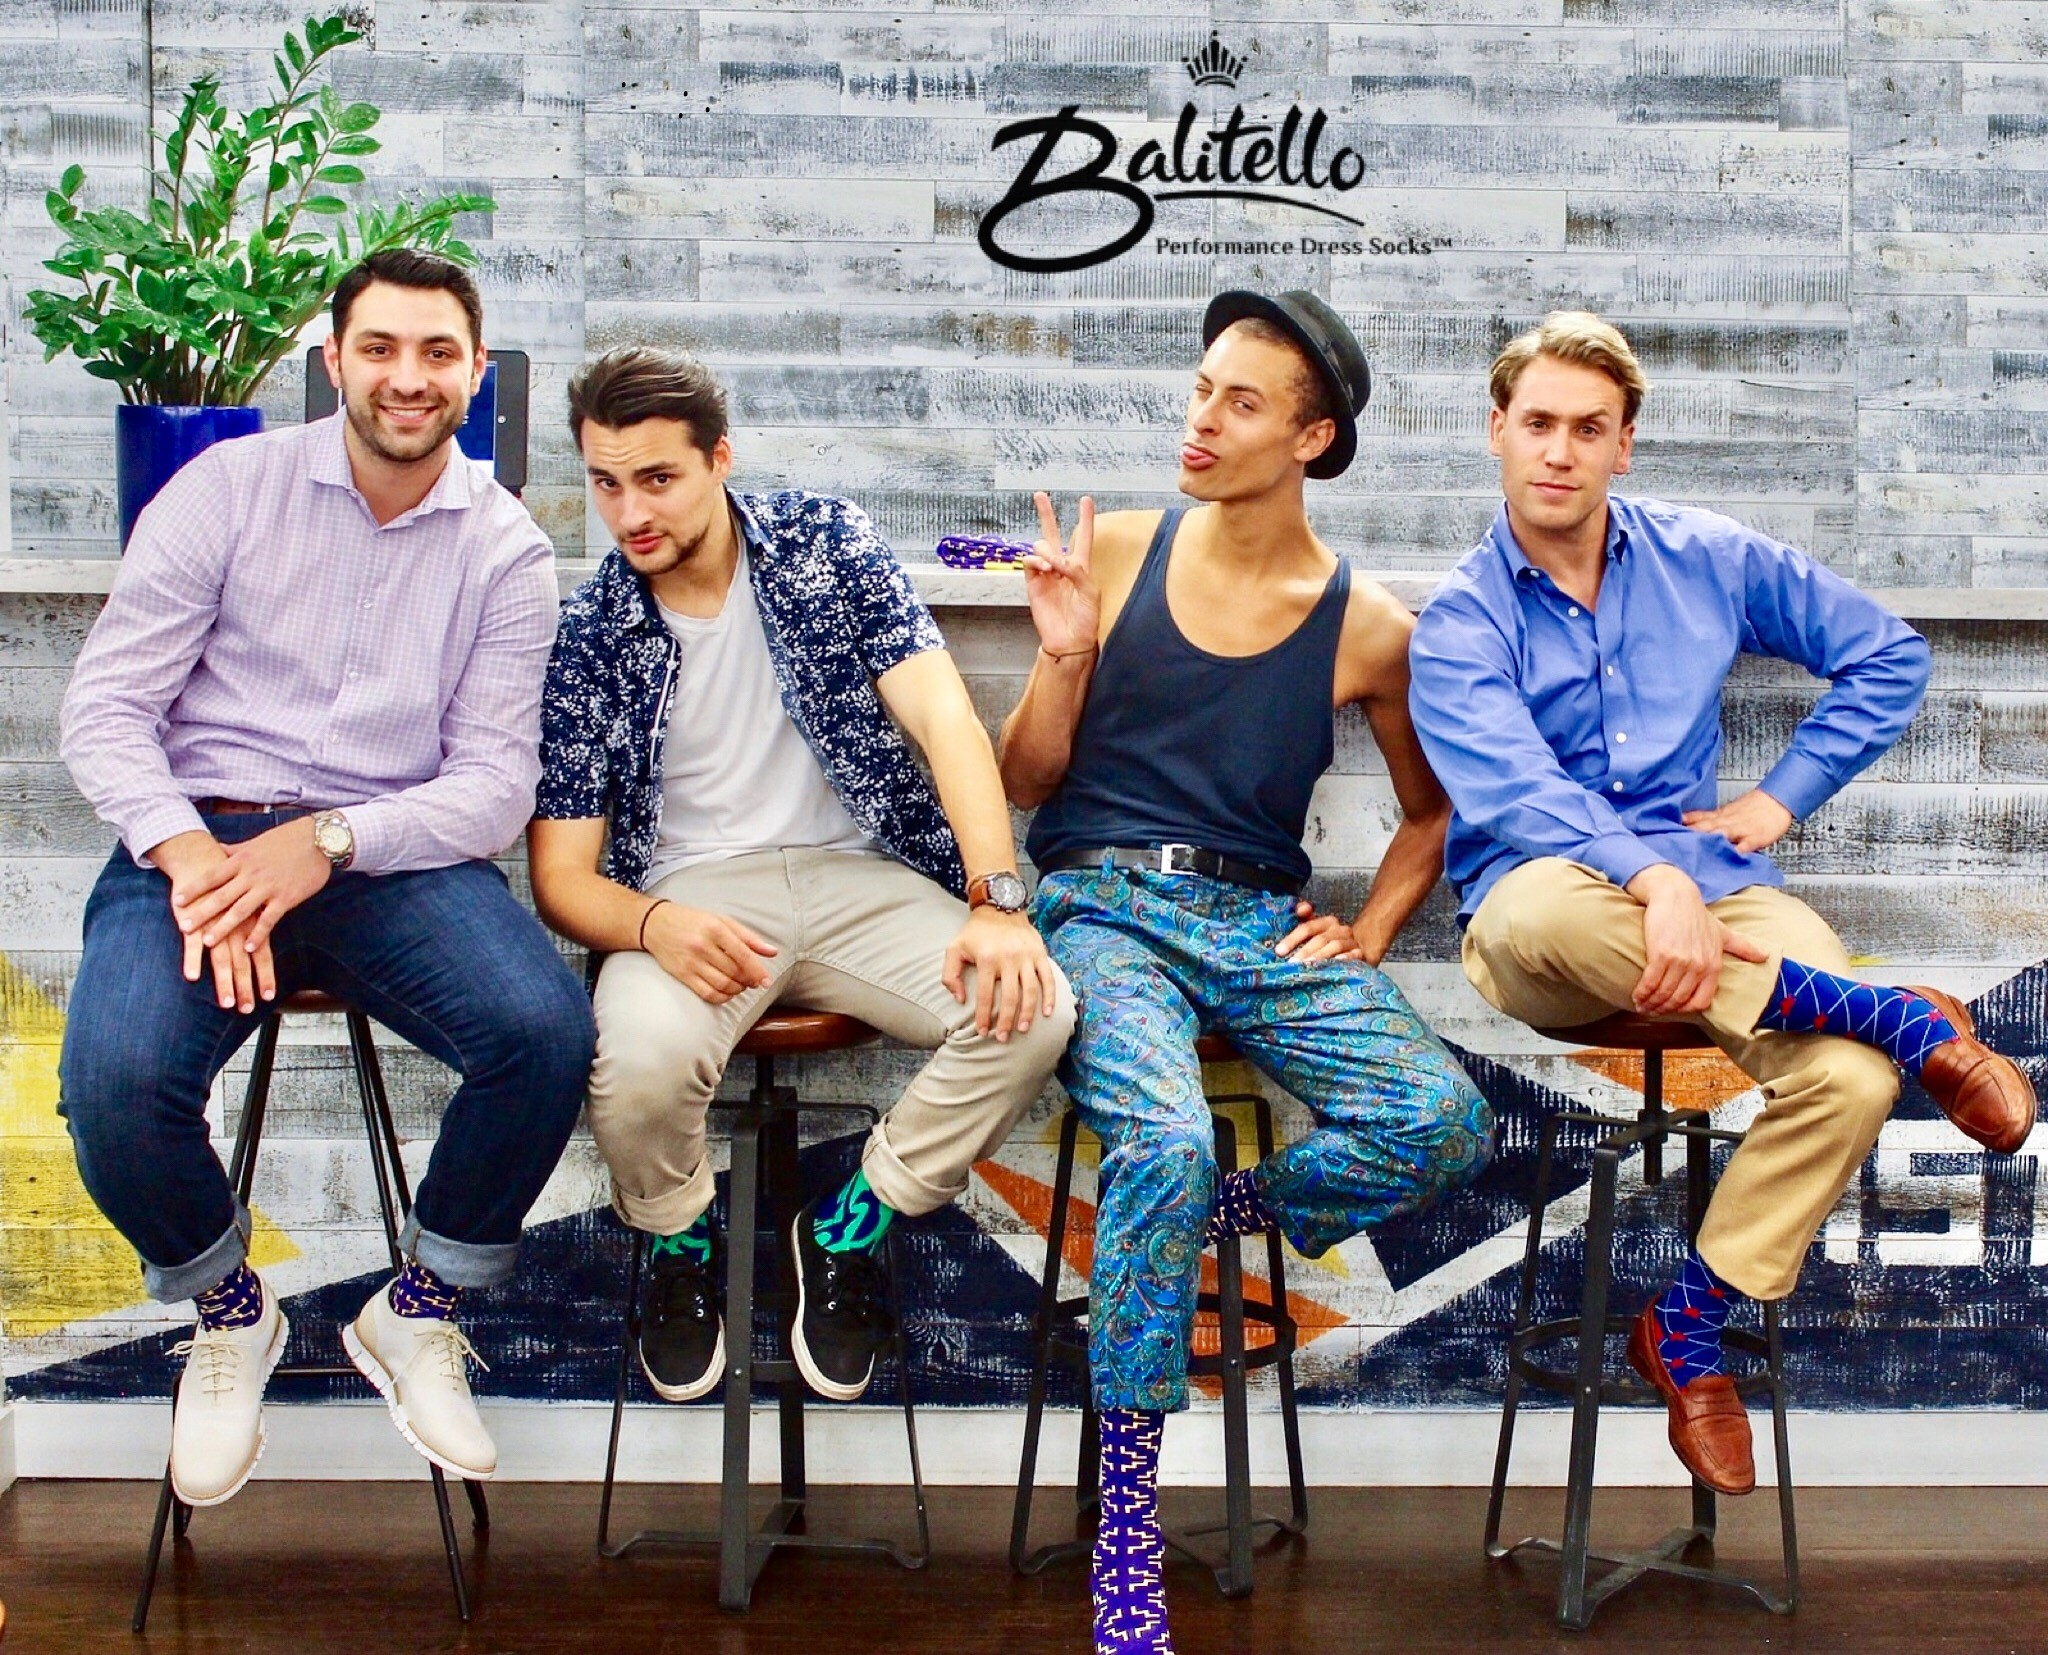 Small Business Snapshot: Balitello